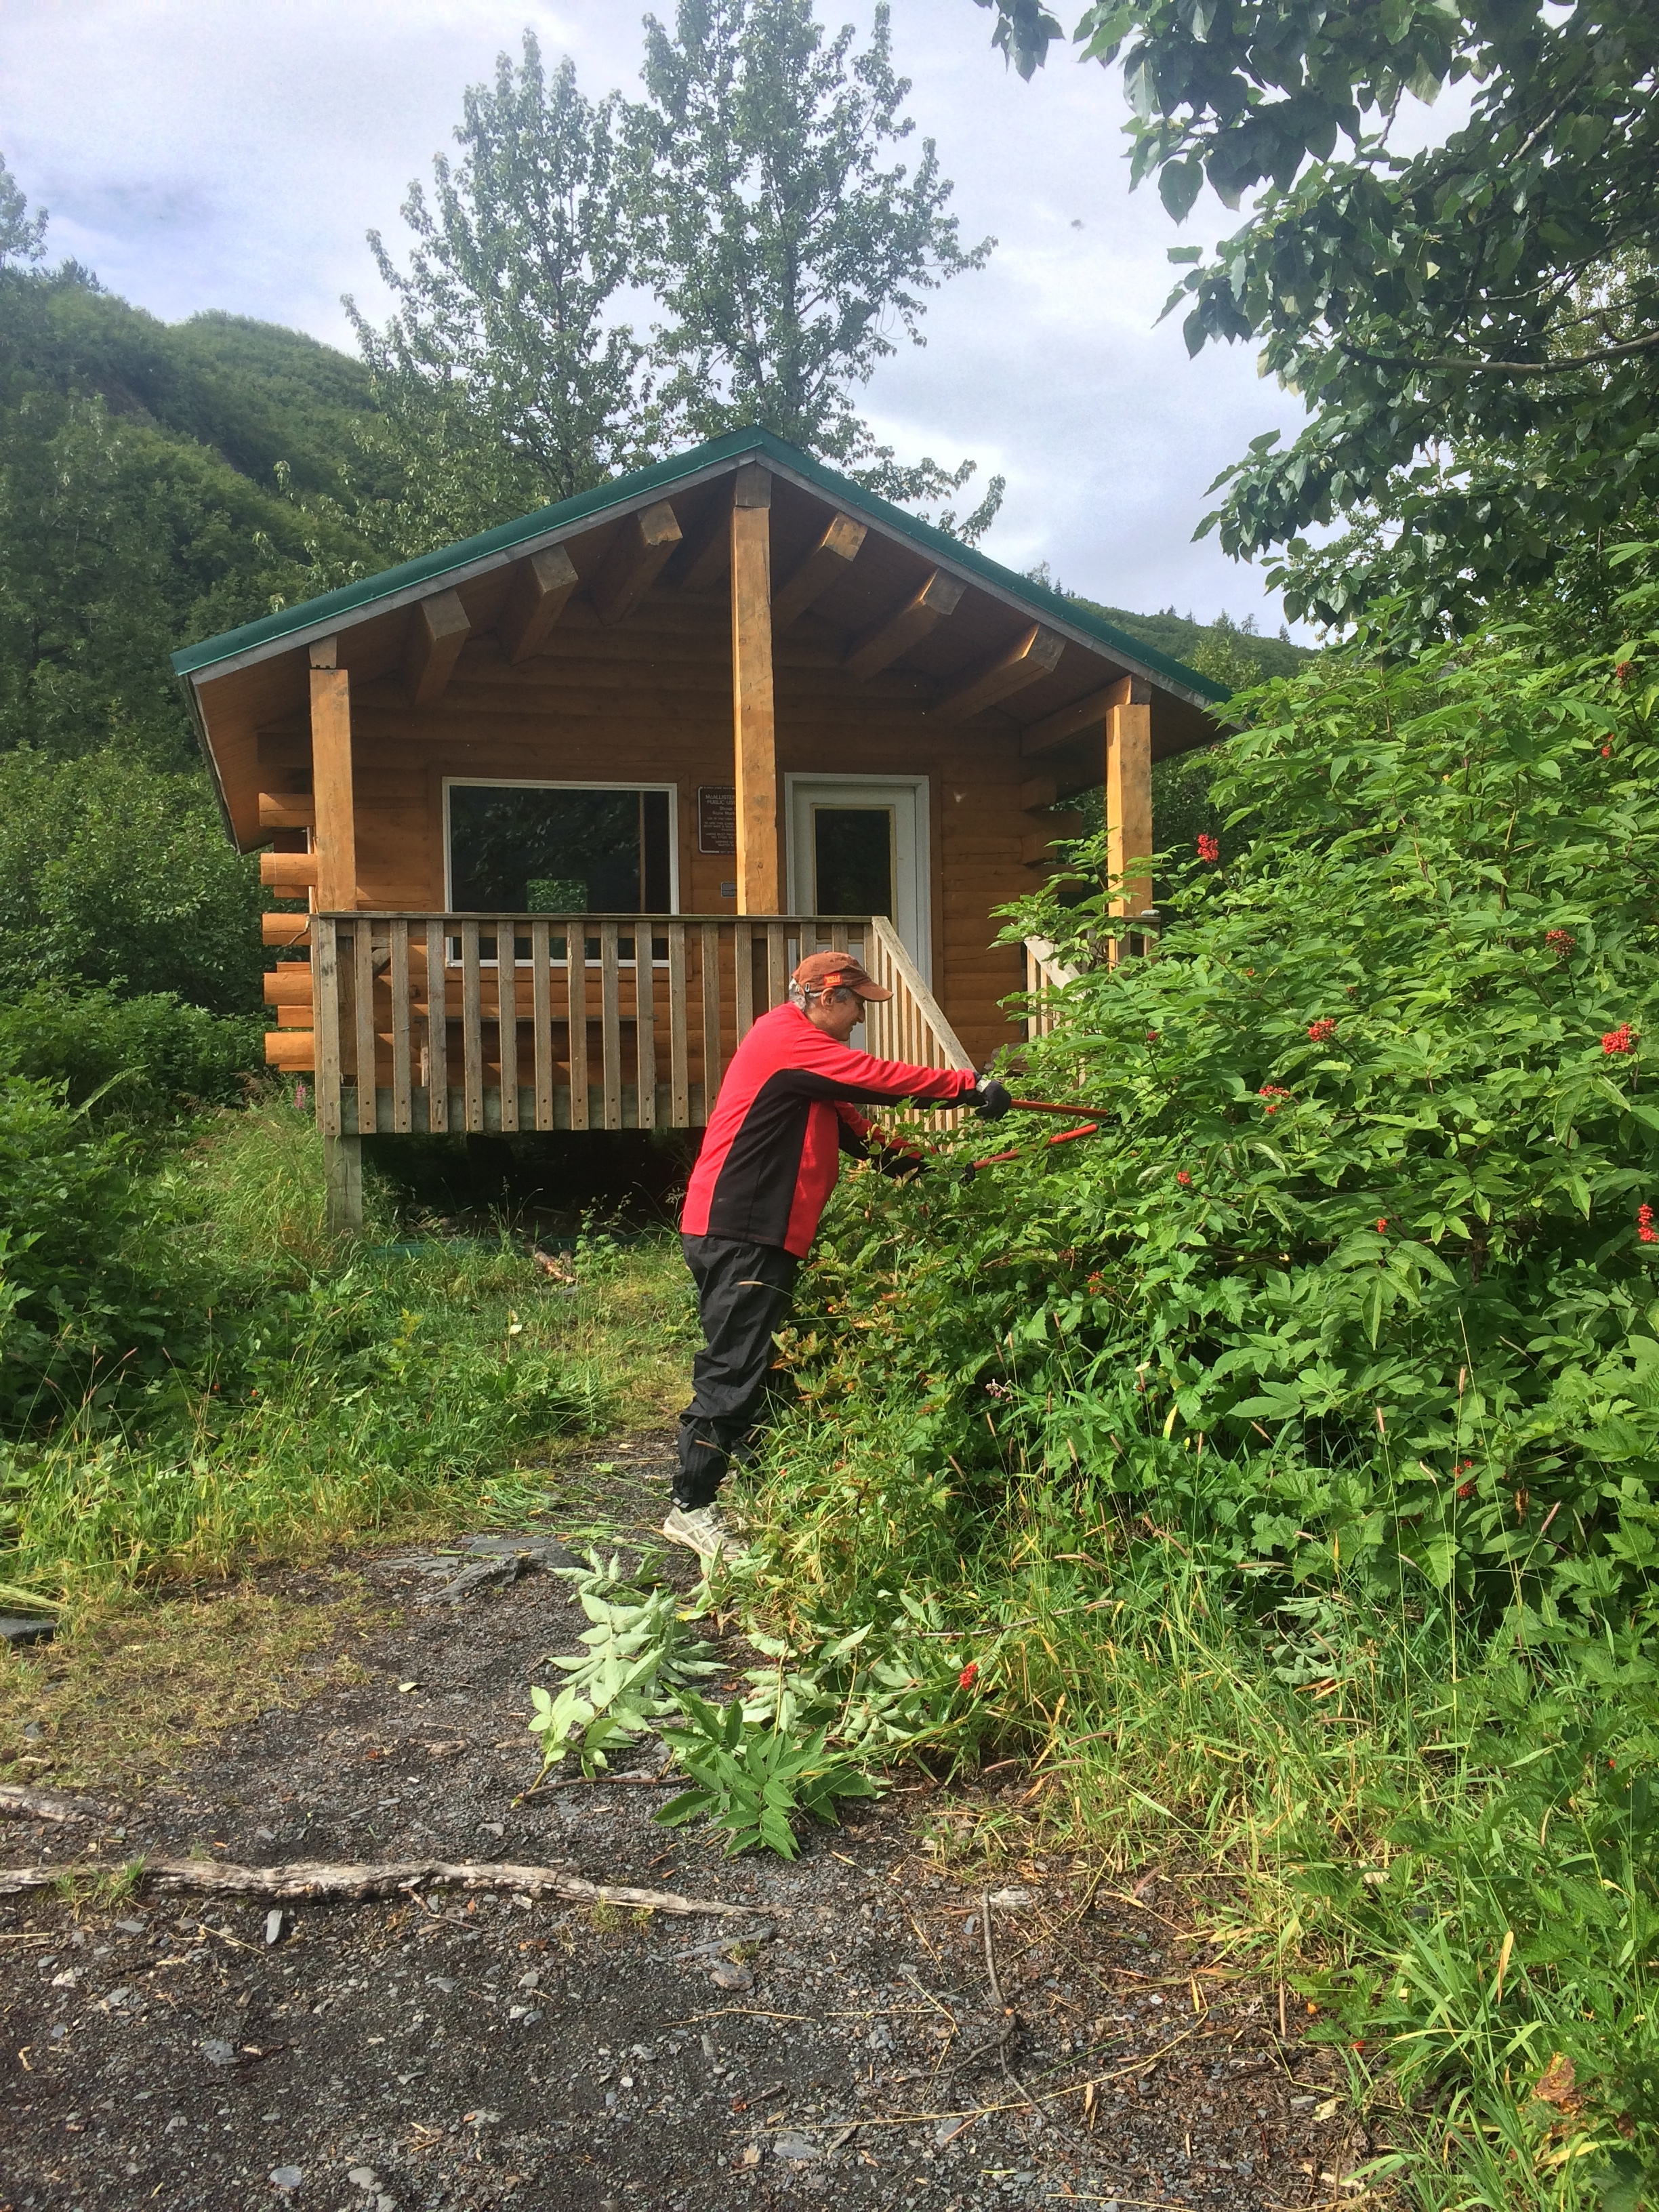 Brush trimming is part of the job for Levitation 49 summer paid and volunteer trail and grounds crews. The organization is also looking to hire a campground host for Blueberry Campground and water taxi boat captains to take guests to and from Shoup Bay public use cabins.